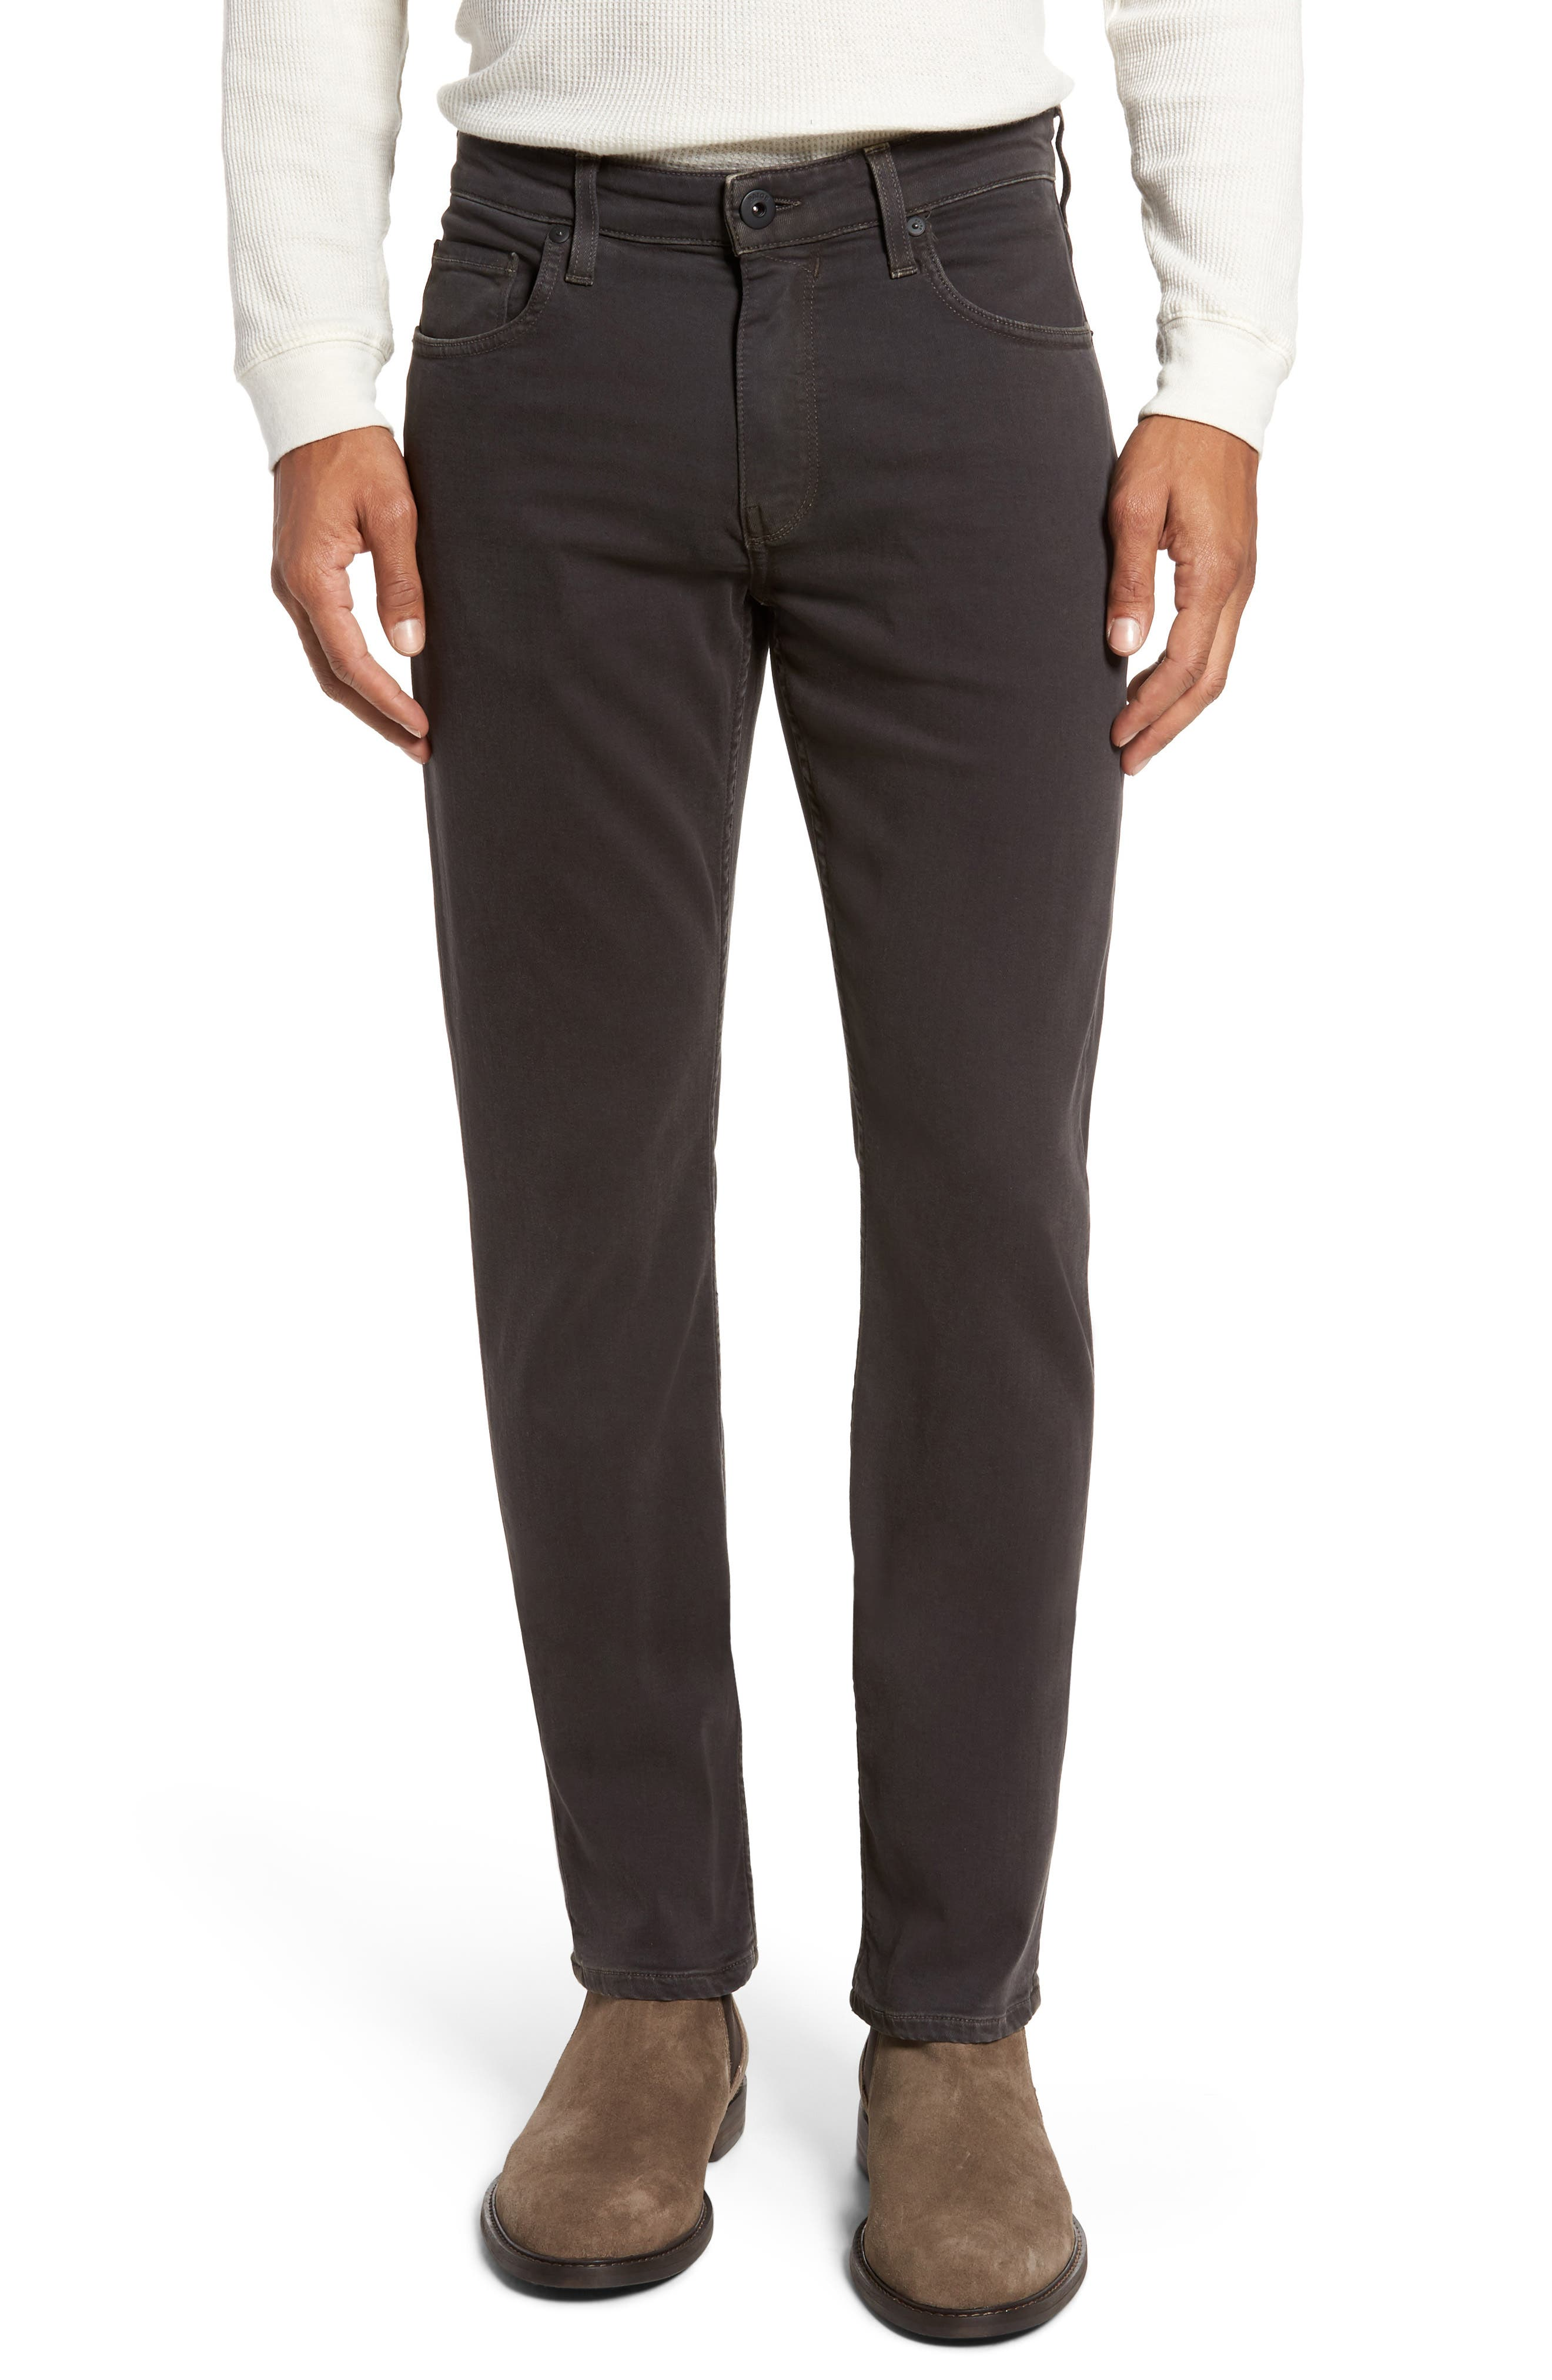 Transcend - Federal Slim Straight Leg Jeans,                         Main,                         color, 001